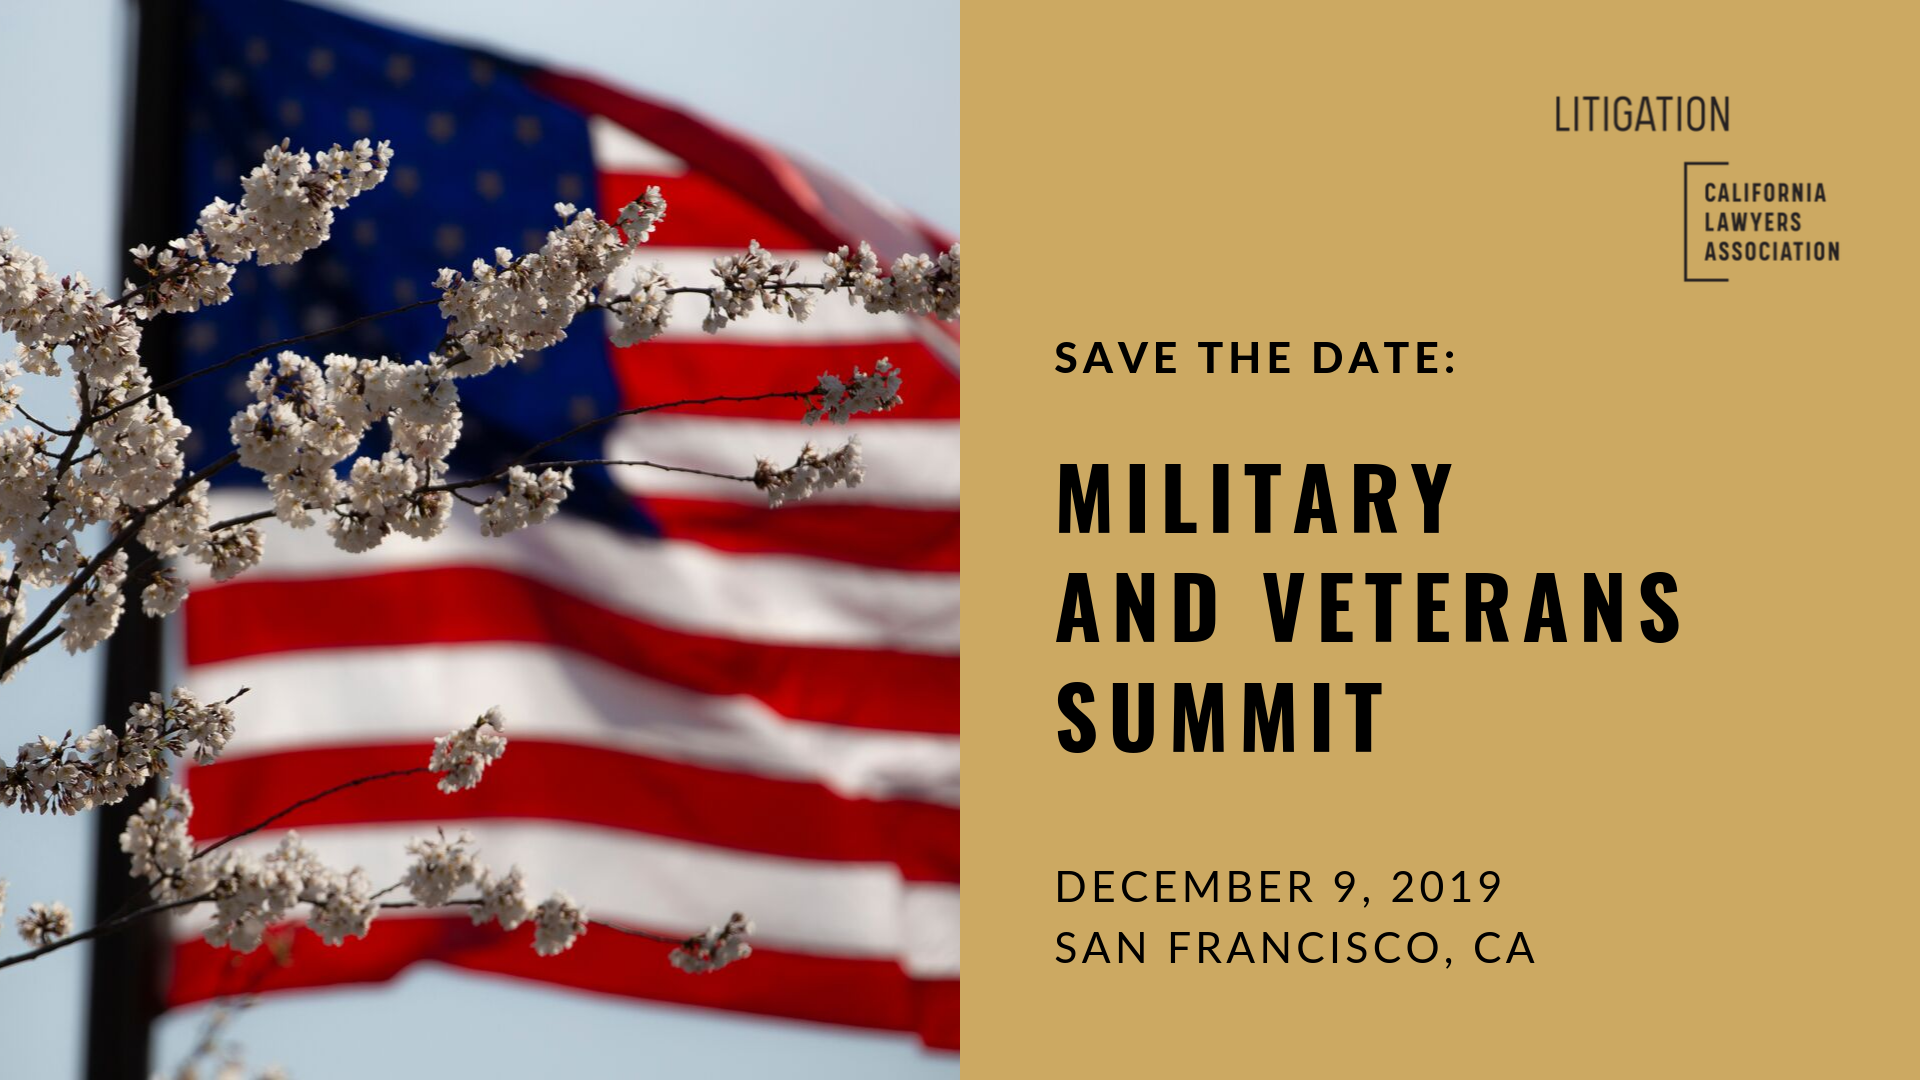 Save the Date BAnner for the Military and Veterans Summit